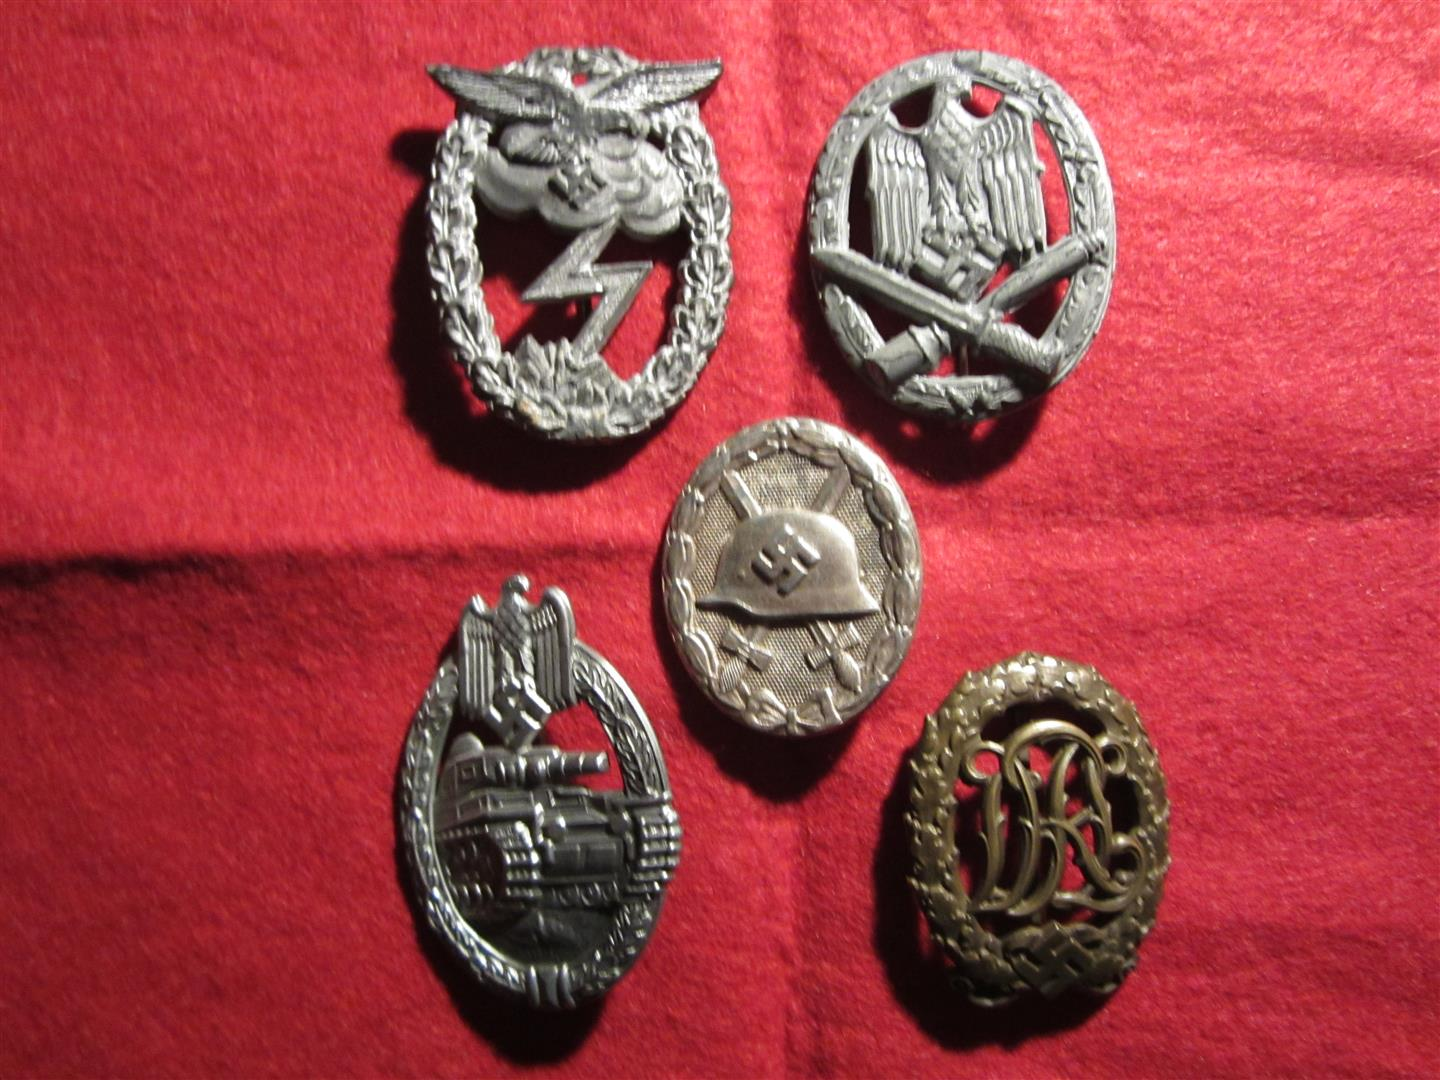 WW2 German Badges